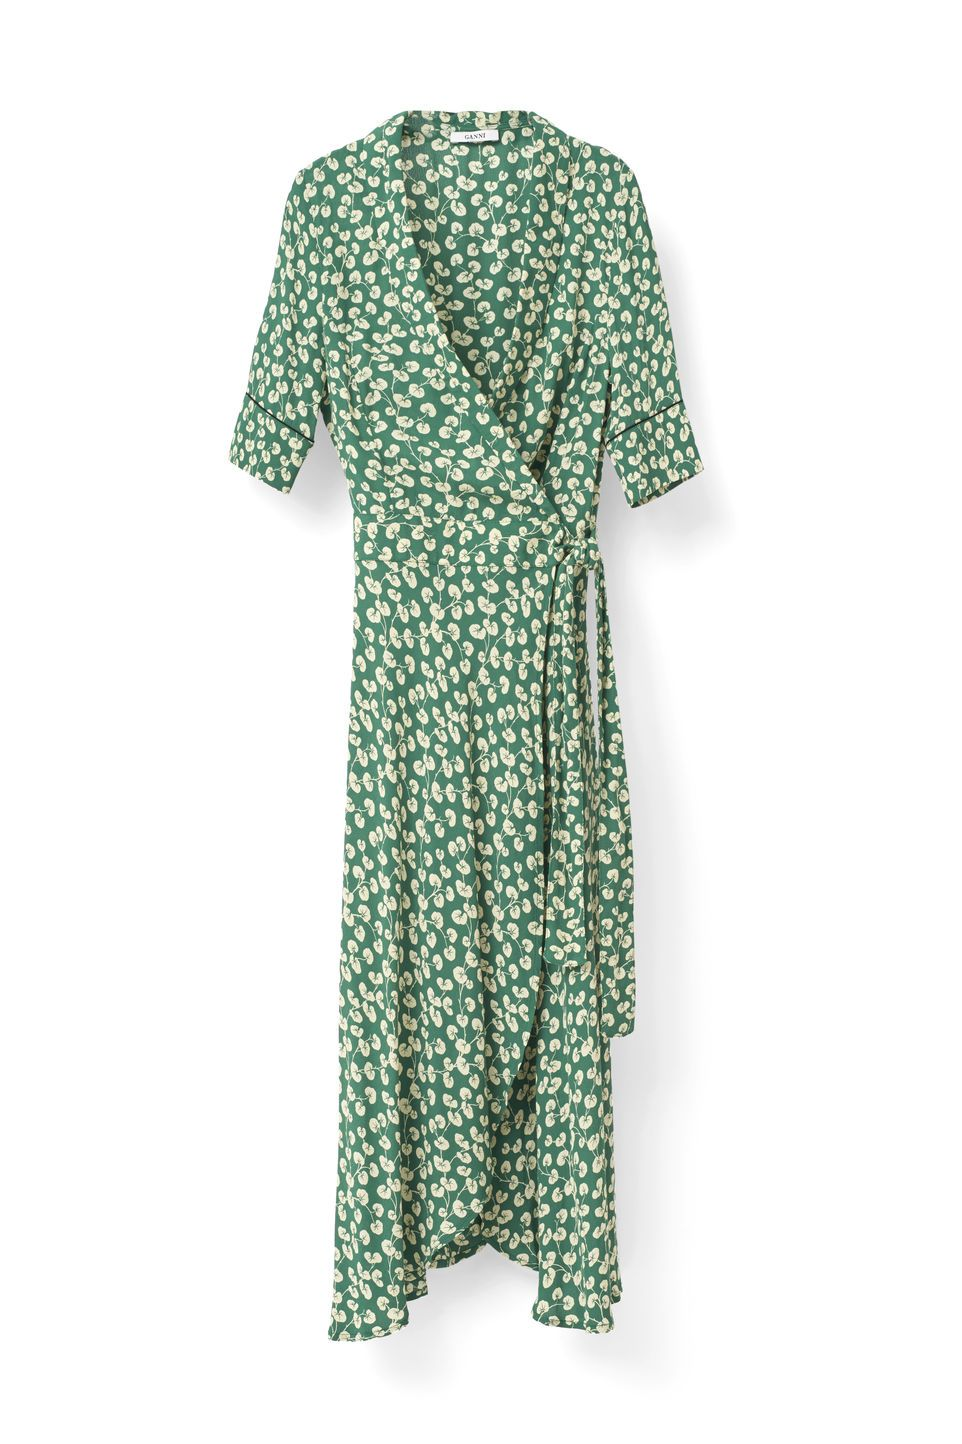 Dalton Crepe Dress, Verdant Green | Ganni dress, Kimono